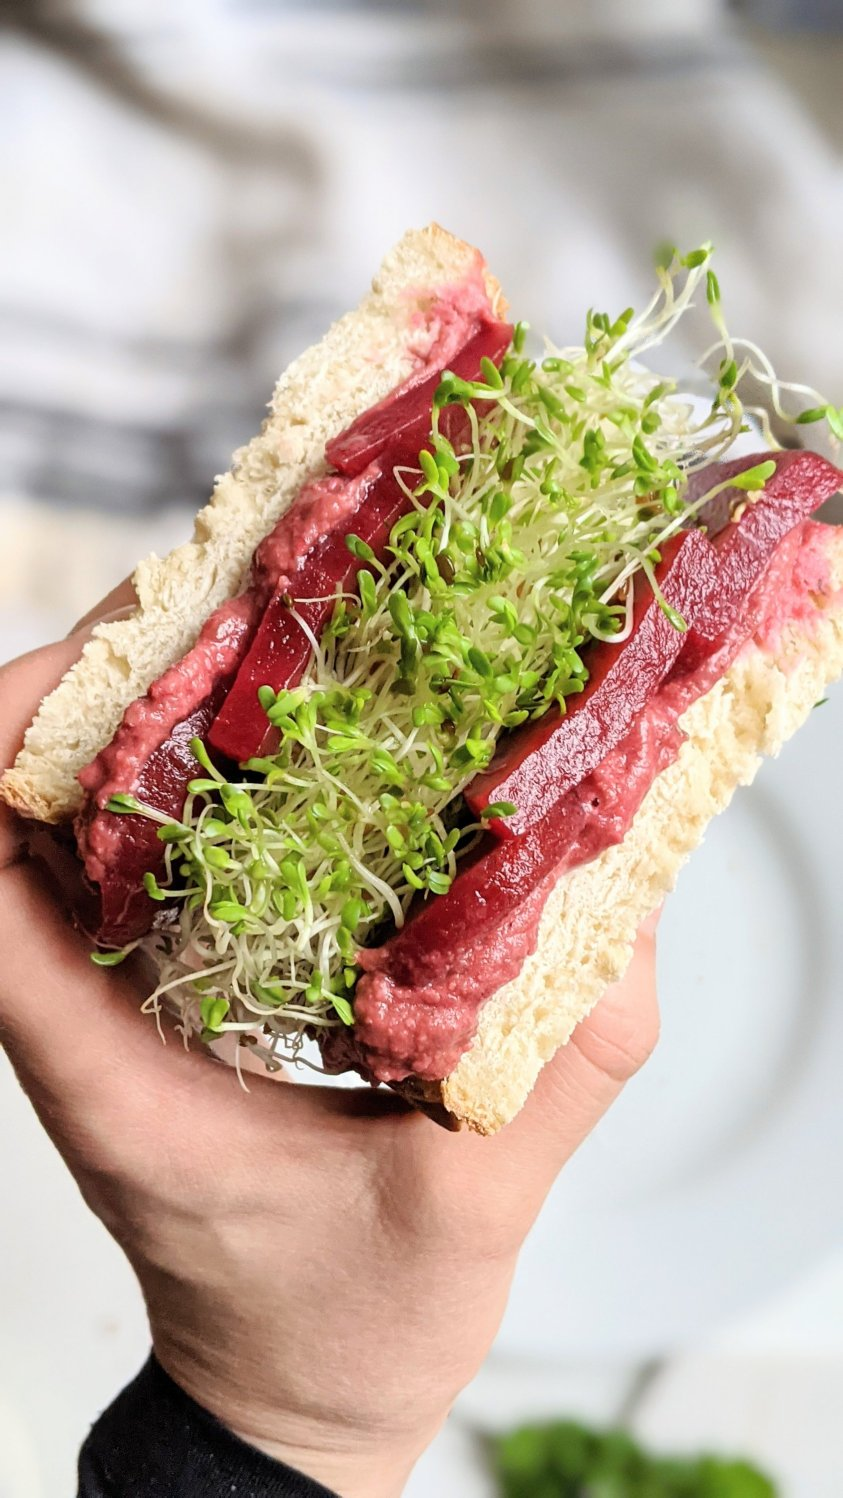 pickled beet sandwich recipe vegan gluten free vegetarian meatless veganuary beet recipes with canned beets healthy lunches with beets sandwich with beet root and hummus